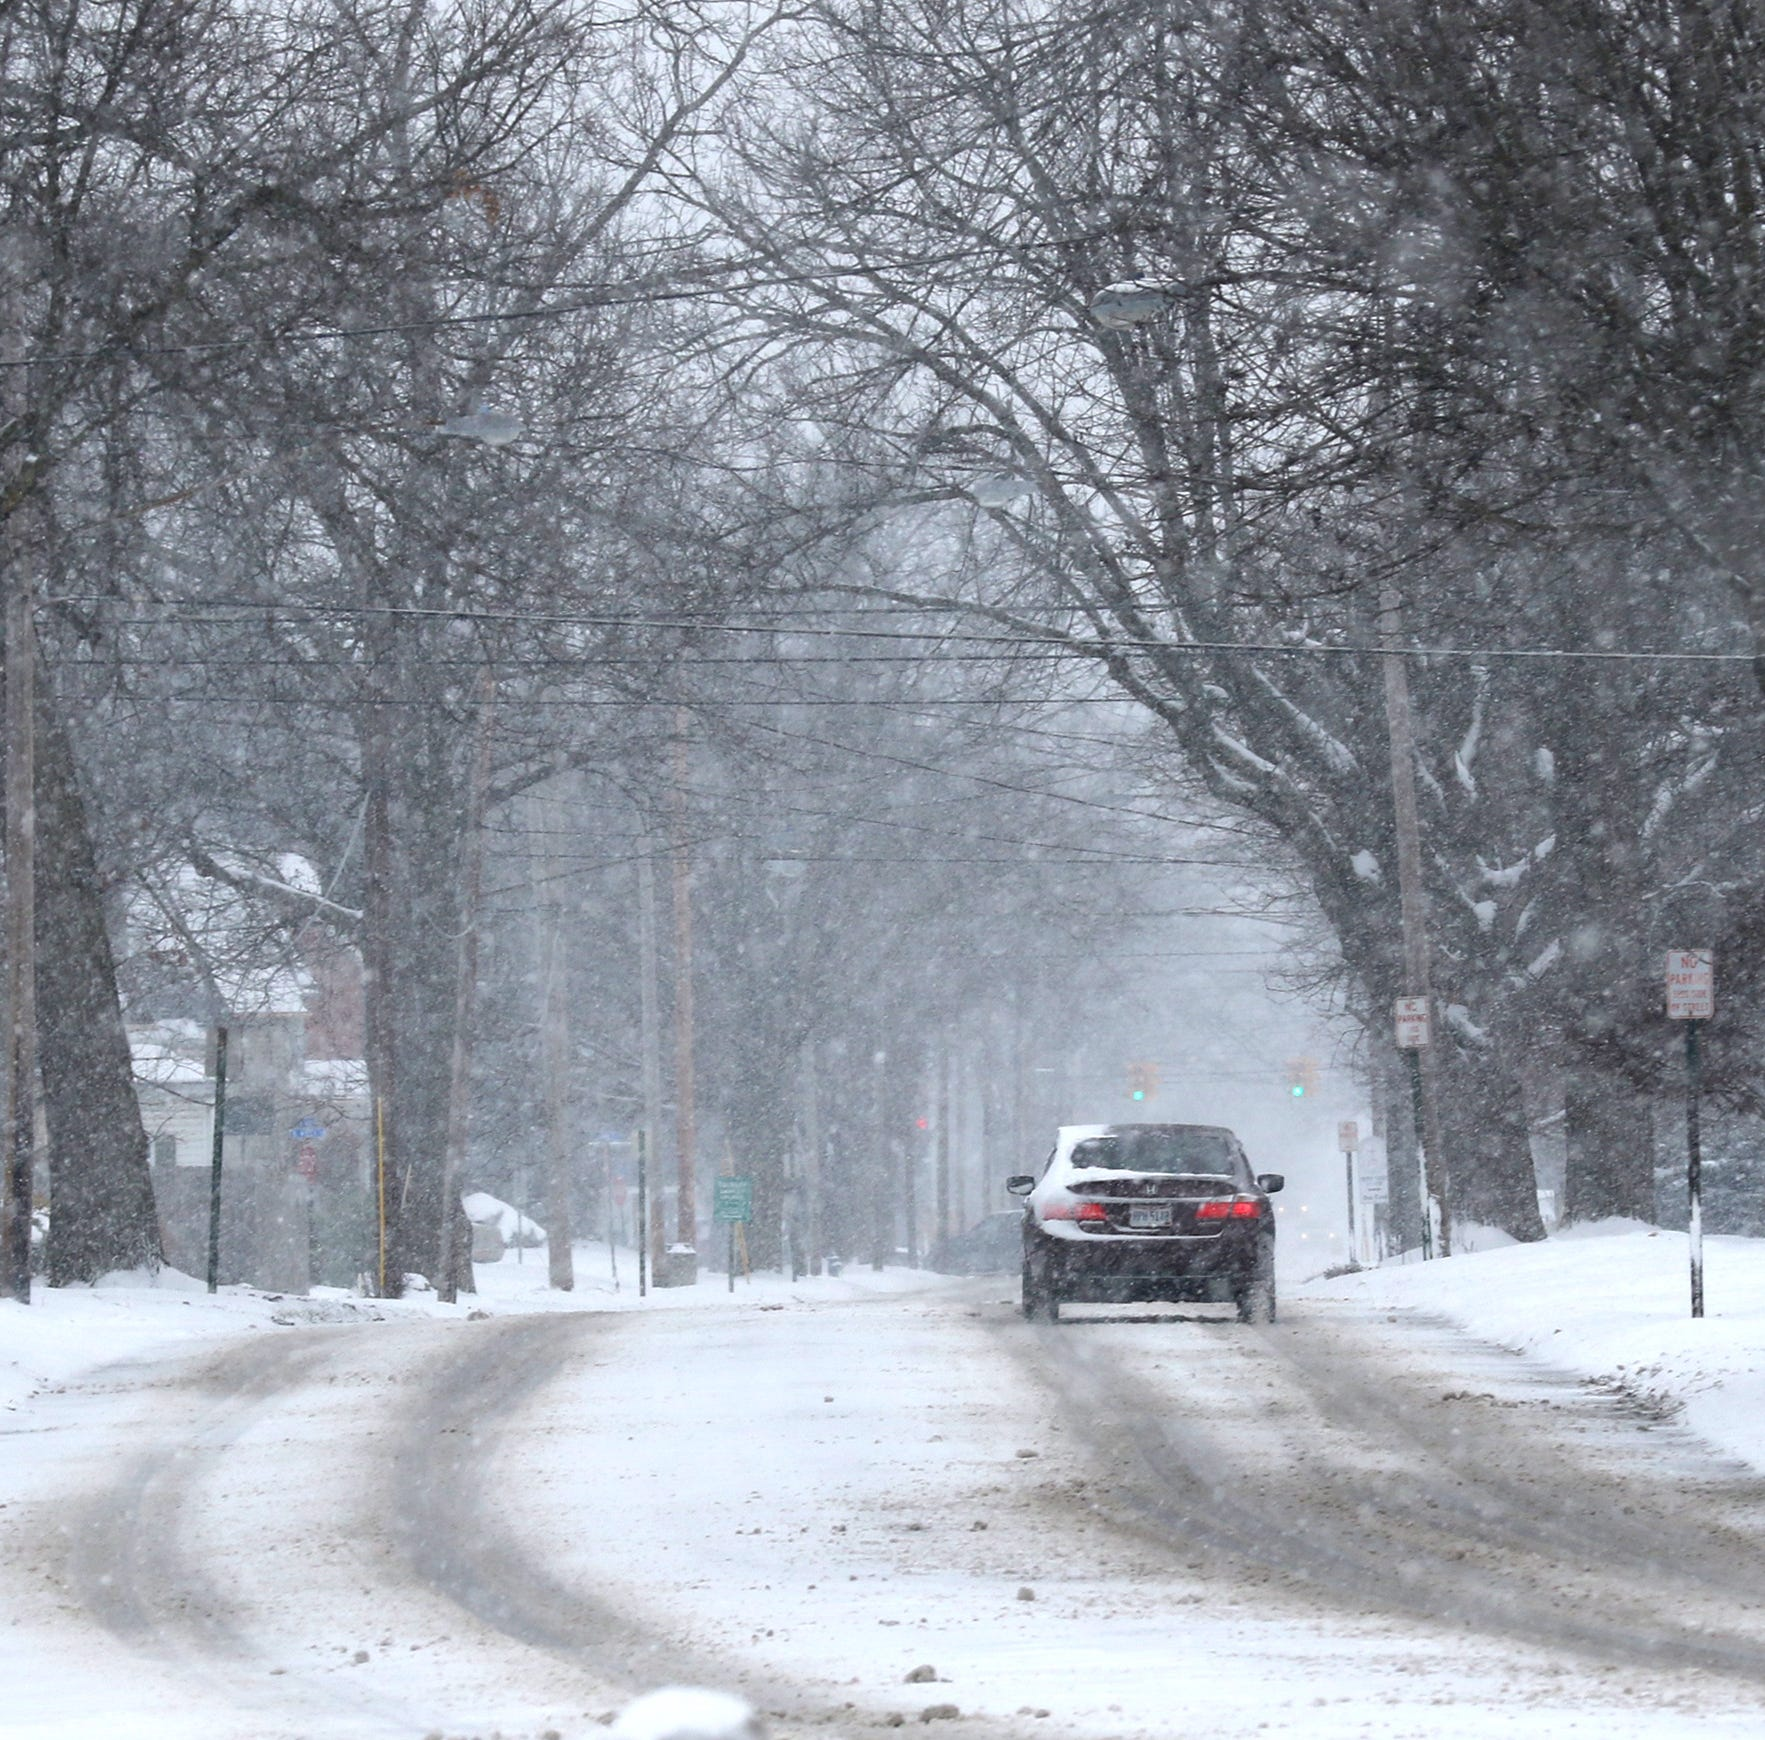 Winter storm Harper buries Crawford County in at least 8 inches of snow